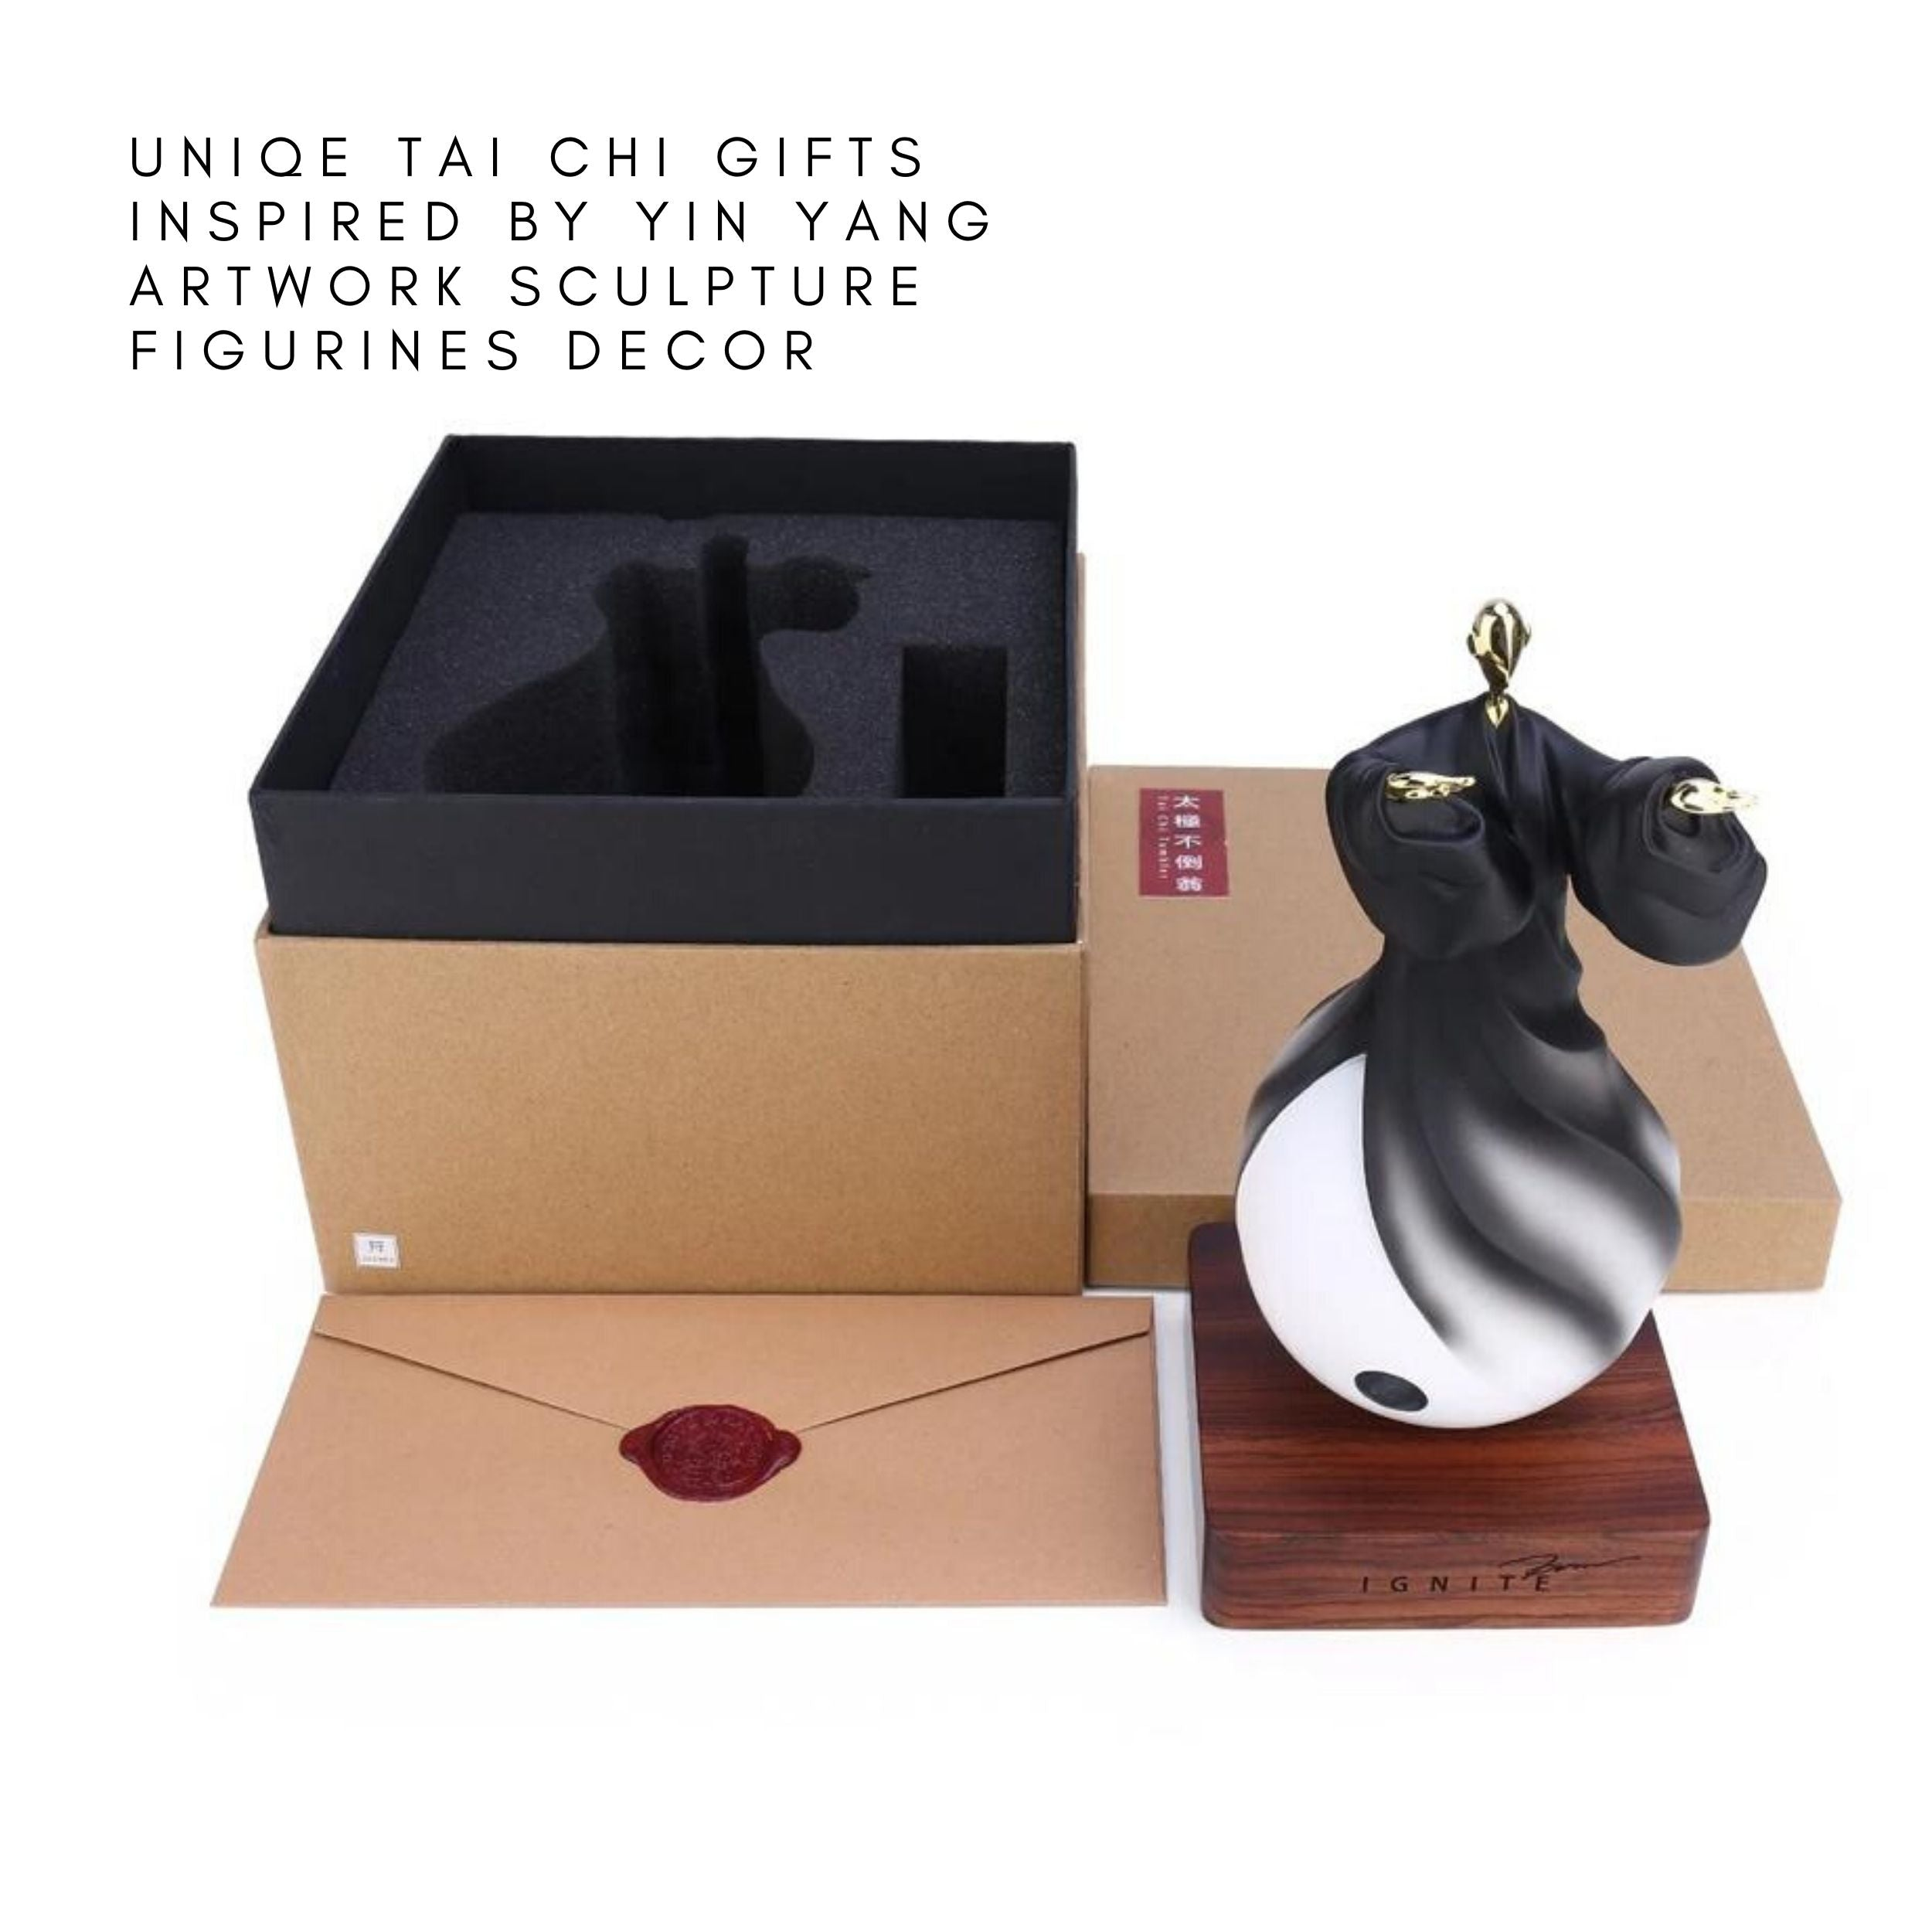 Tai Chi Gifts inspired by Yin Yang Artwork Sculpture Figurines Decor